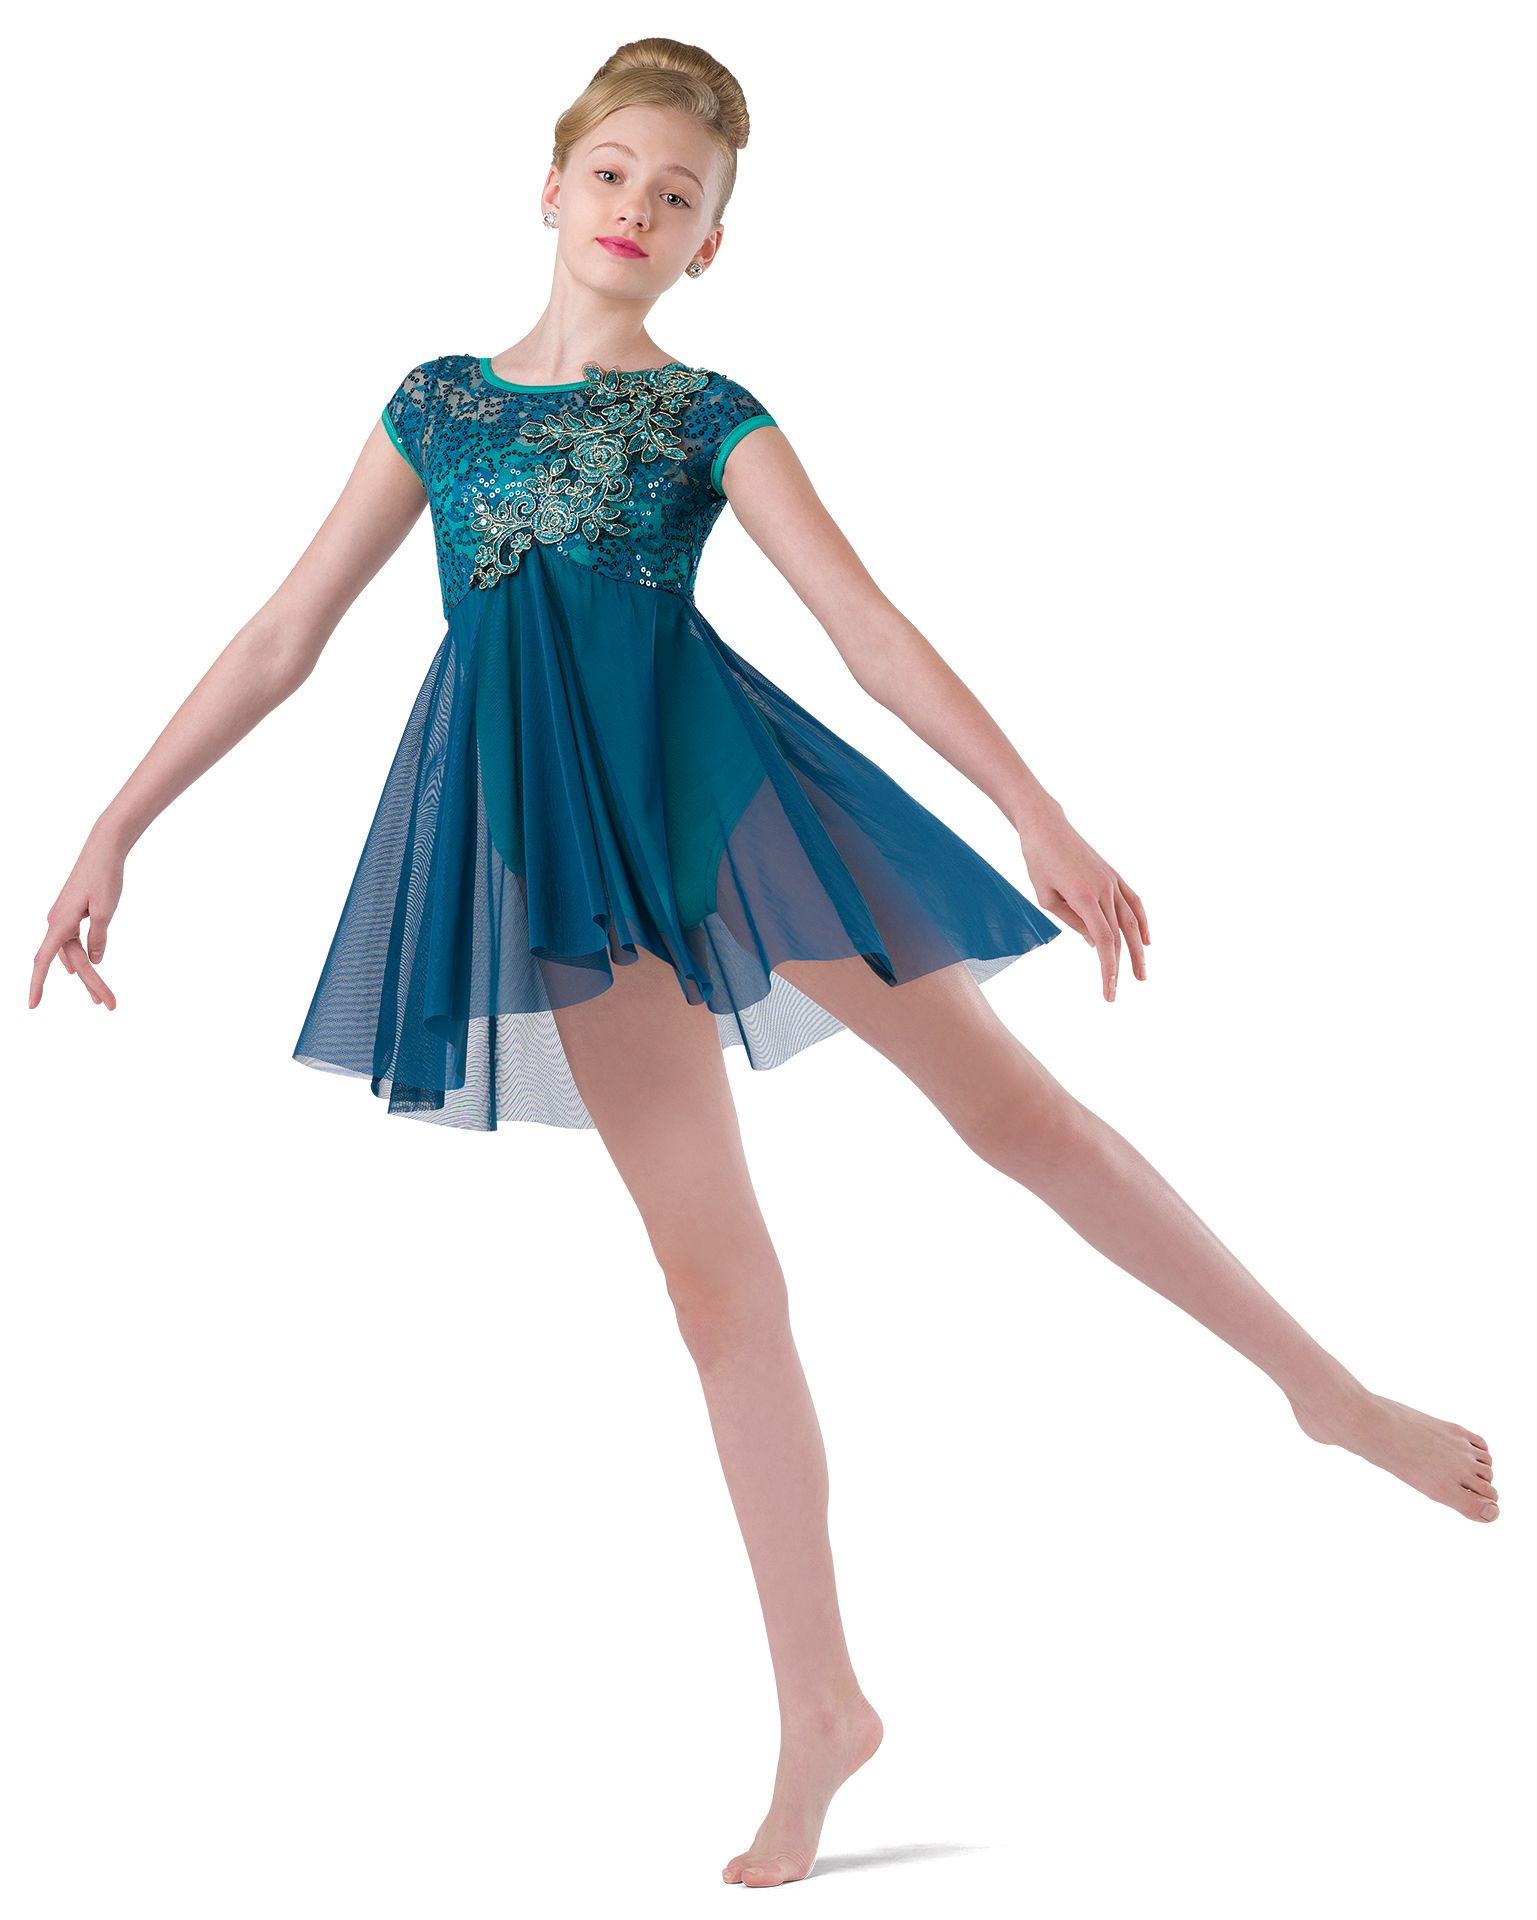 Toddler Girls Lyrical Dance Leotard Dress Ballet Sequins Mesh Skirt Costume